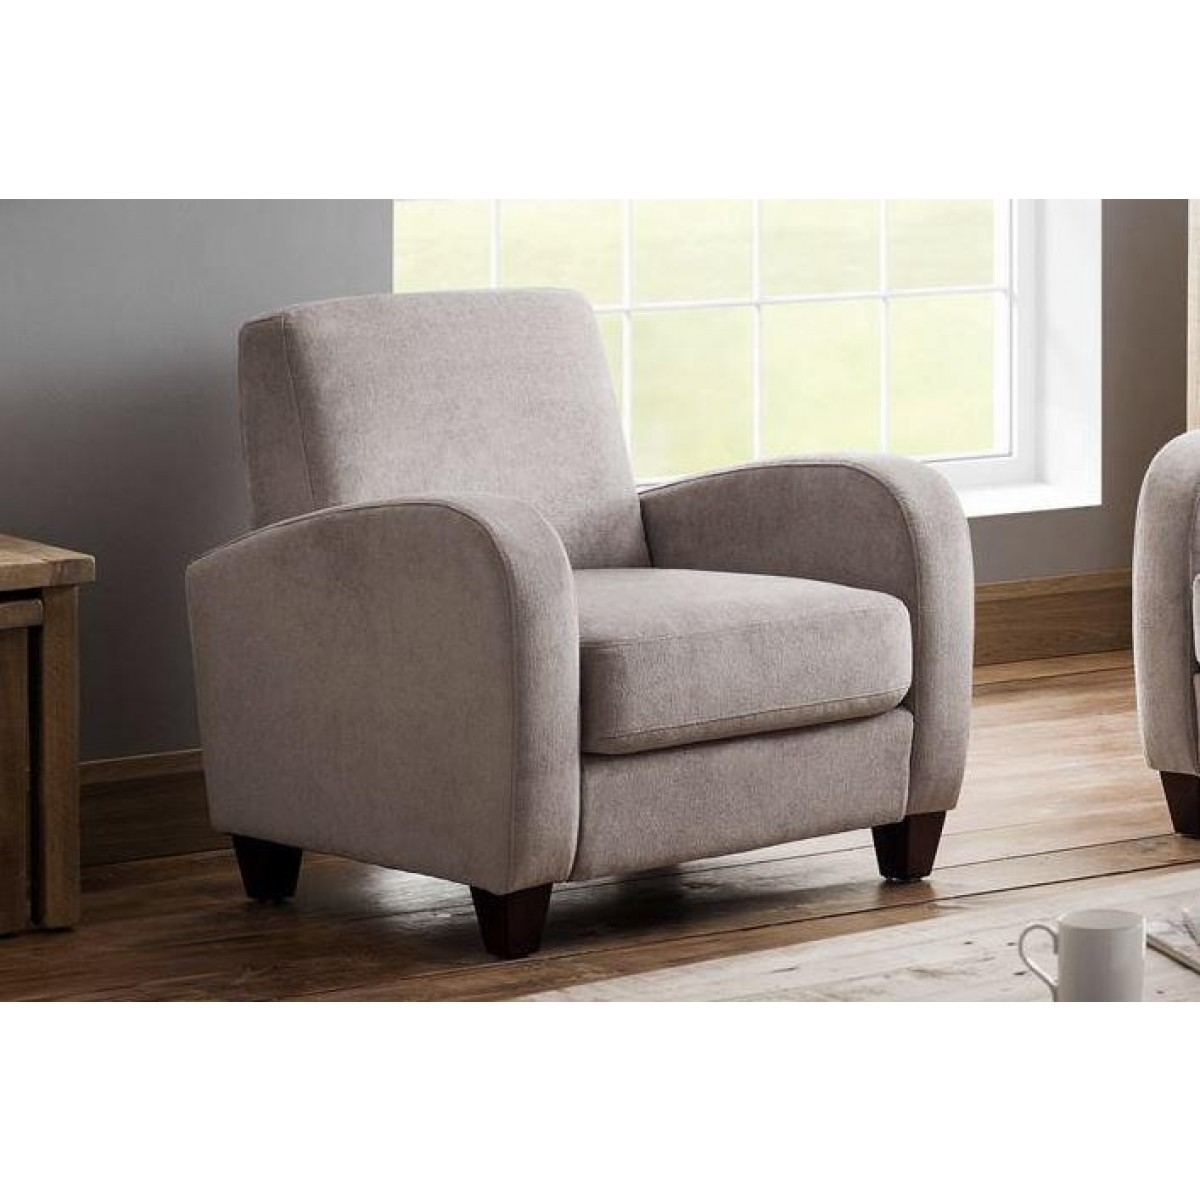 Modern Home Vivo Sofa Suite Free Next Day Delivery